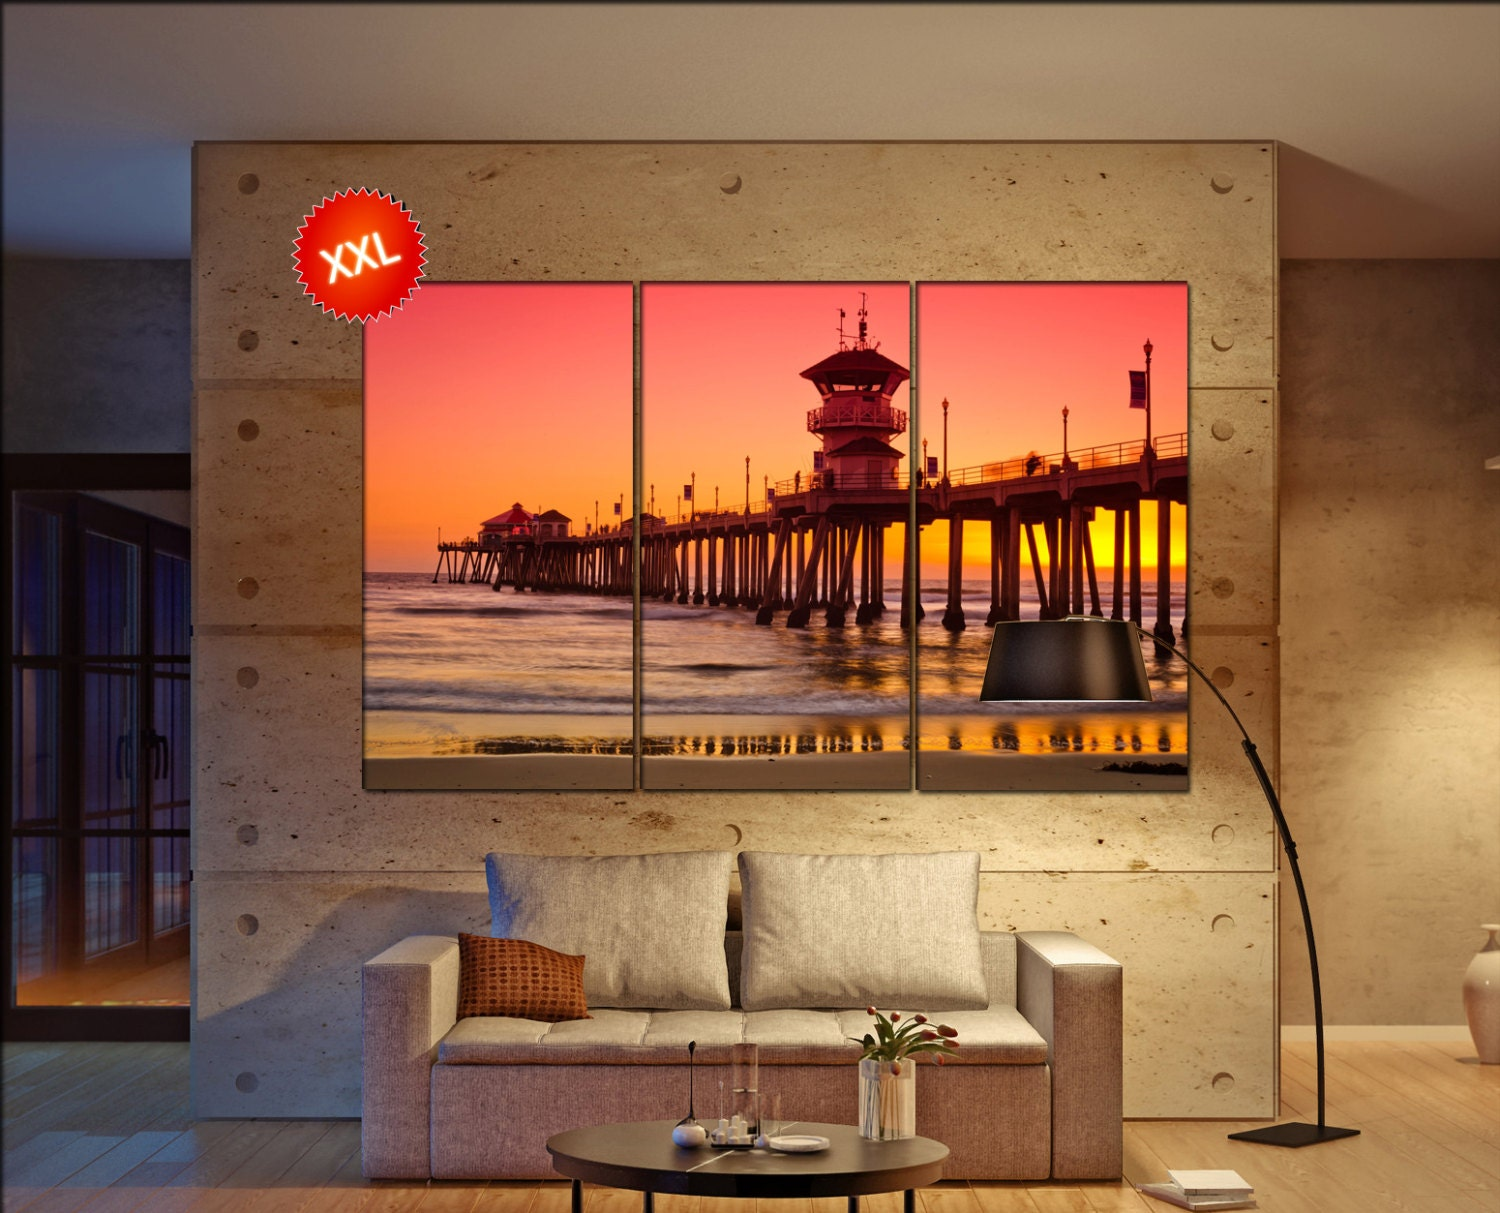 Huntington Beach Wall Decor : Huntington beach pier wall decor art